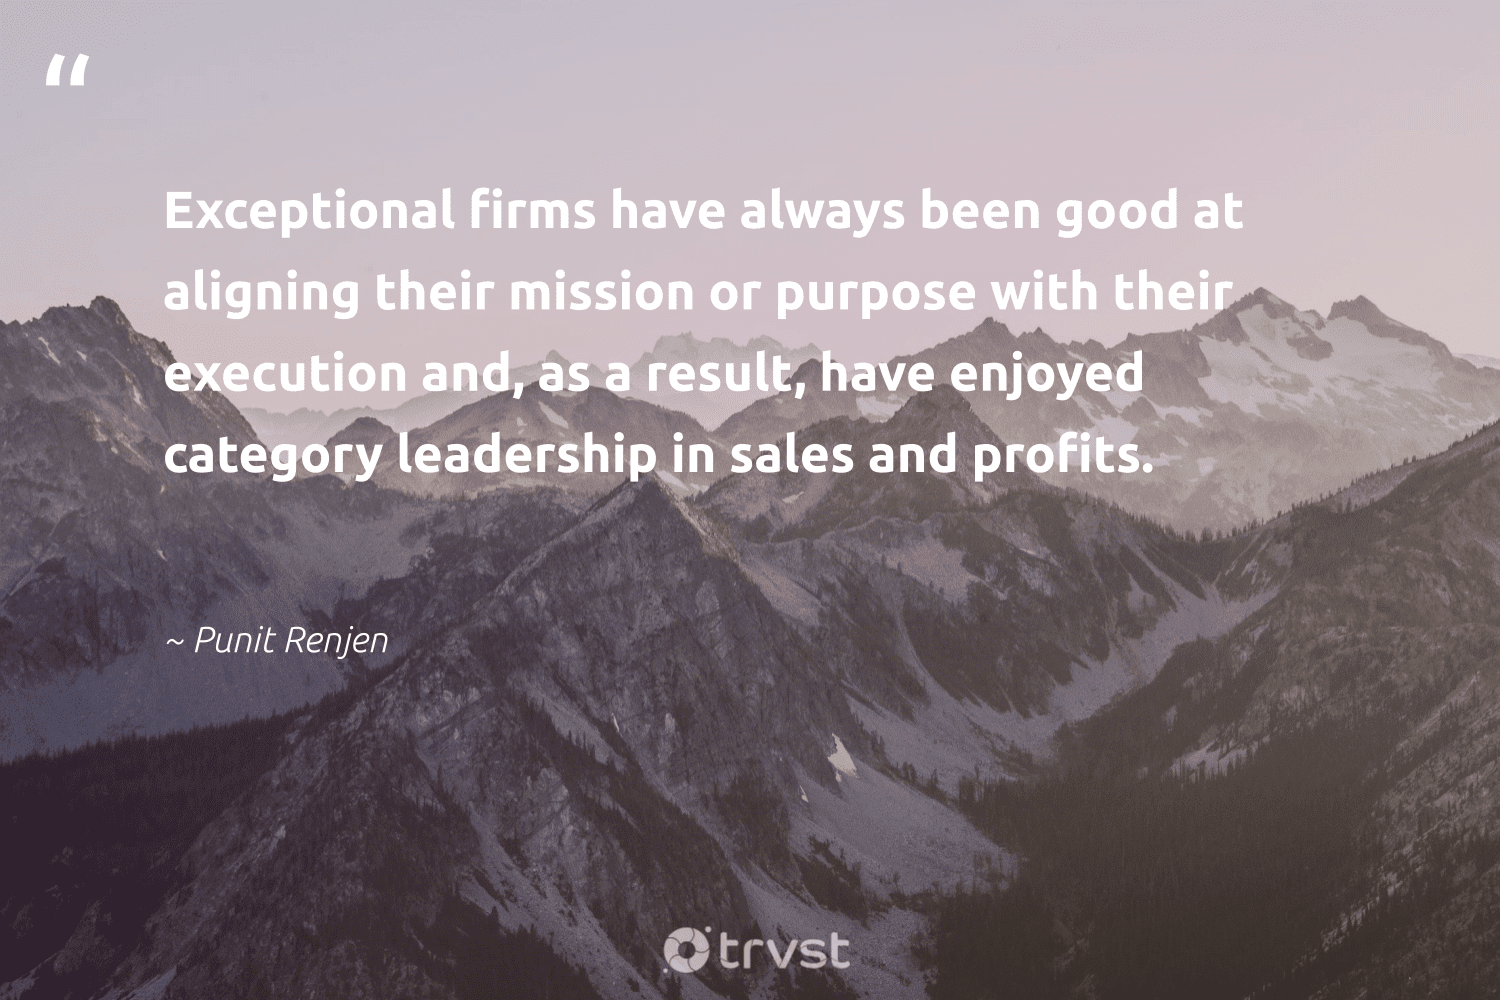 """""""Exceptional firms have always been good at aligning their mission or purpose with their execution and, as a result, have enjoyed category leadership in sales and profits.""""  - Punit Renjen #trvst #quotes #purpose #leadership #purposedriven #futureofwork #health #gogreen #findingpupose #begreat #nevergiveup #dosomething"""